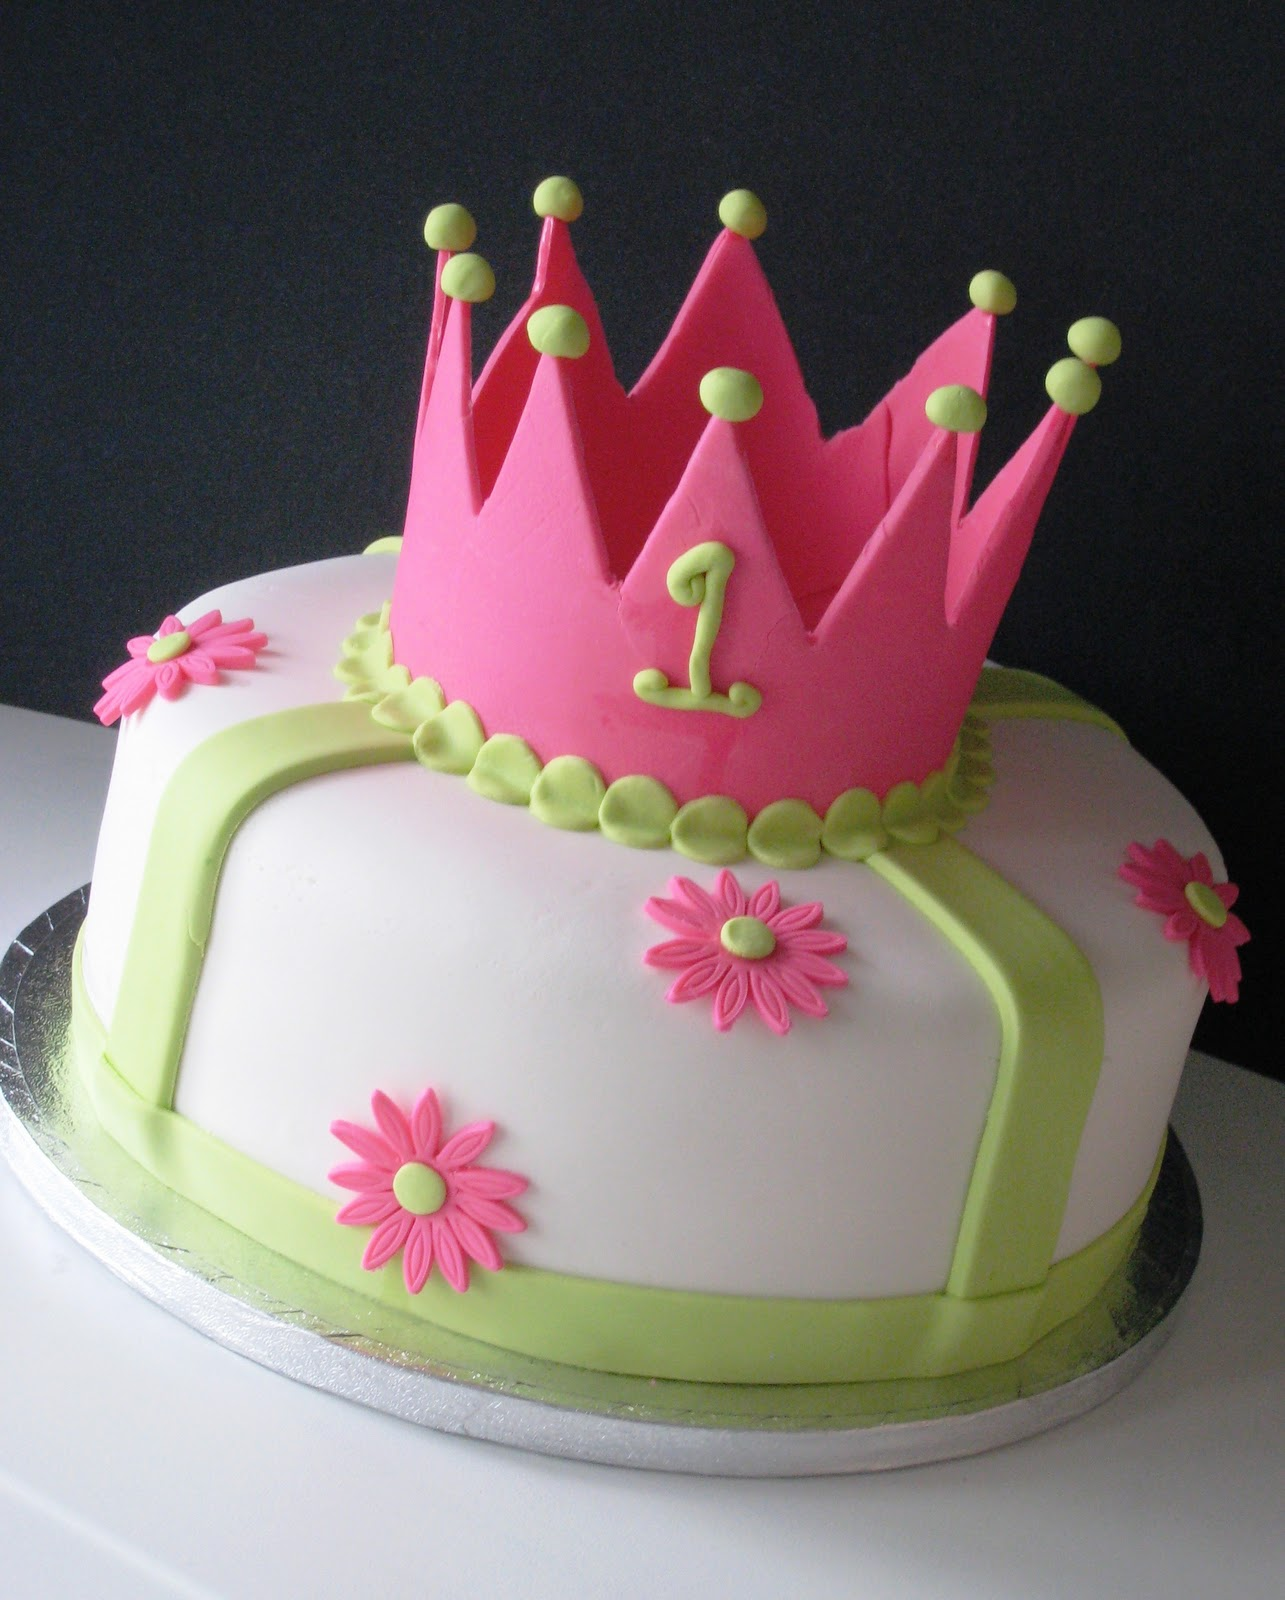 Birthday Cakes For Princess Party Image Inspiration of Cake and